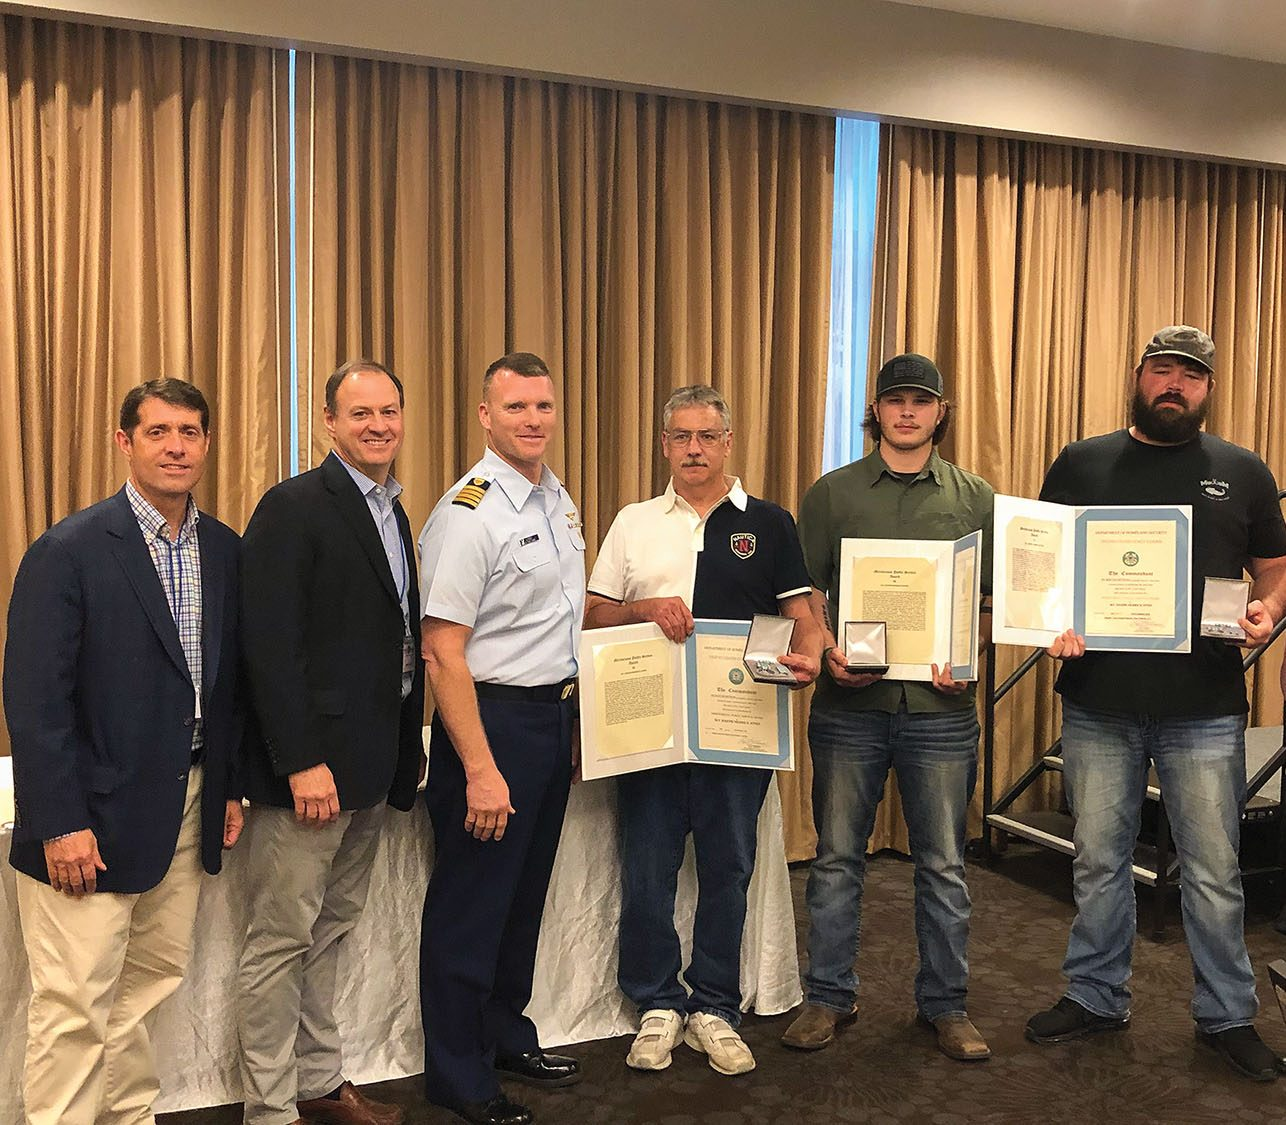 Coast Guard award presentation, from left: David Lane, Canal Barge senior vice president-marketing; Merritt Lane, president and CEO; Coast Guard Capt. Capt. Lewin; Stephan Hill, chief engineer; Dylan Littlejohn, lead deckhand; and Adam 'Gator' Dobbs, pilot. (Photo courtesy of Canal Barge Company)